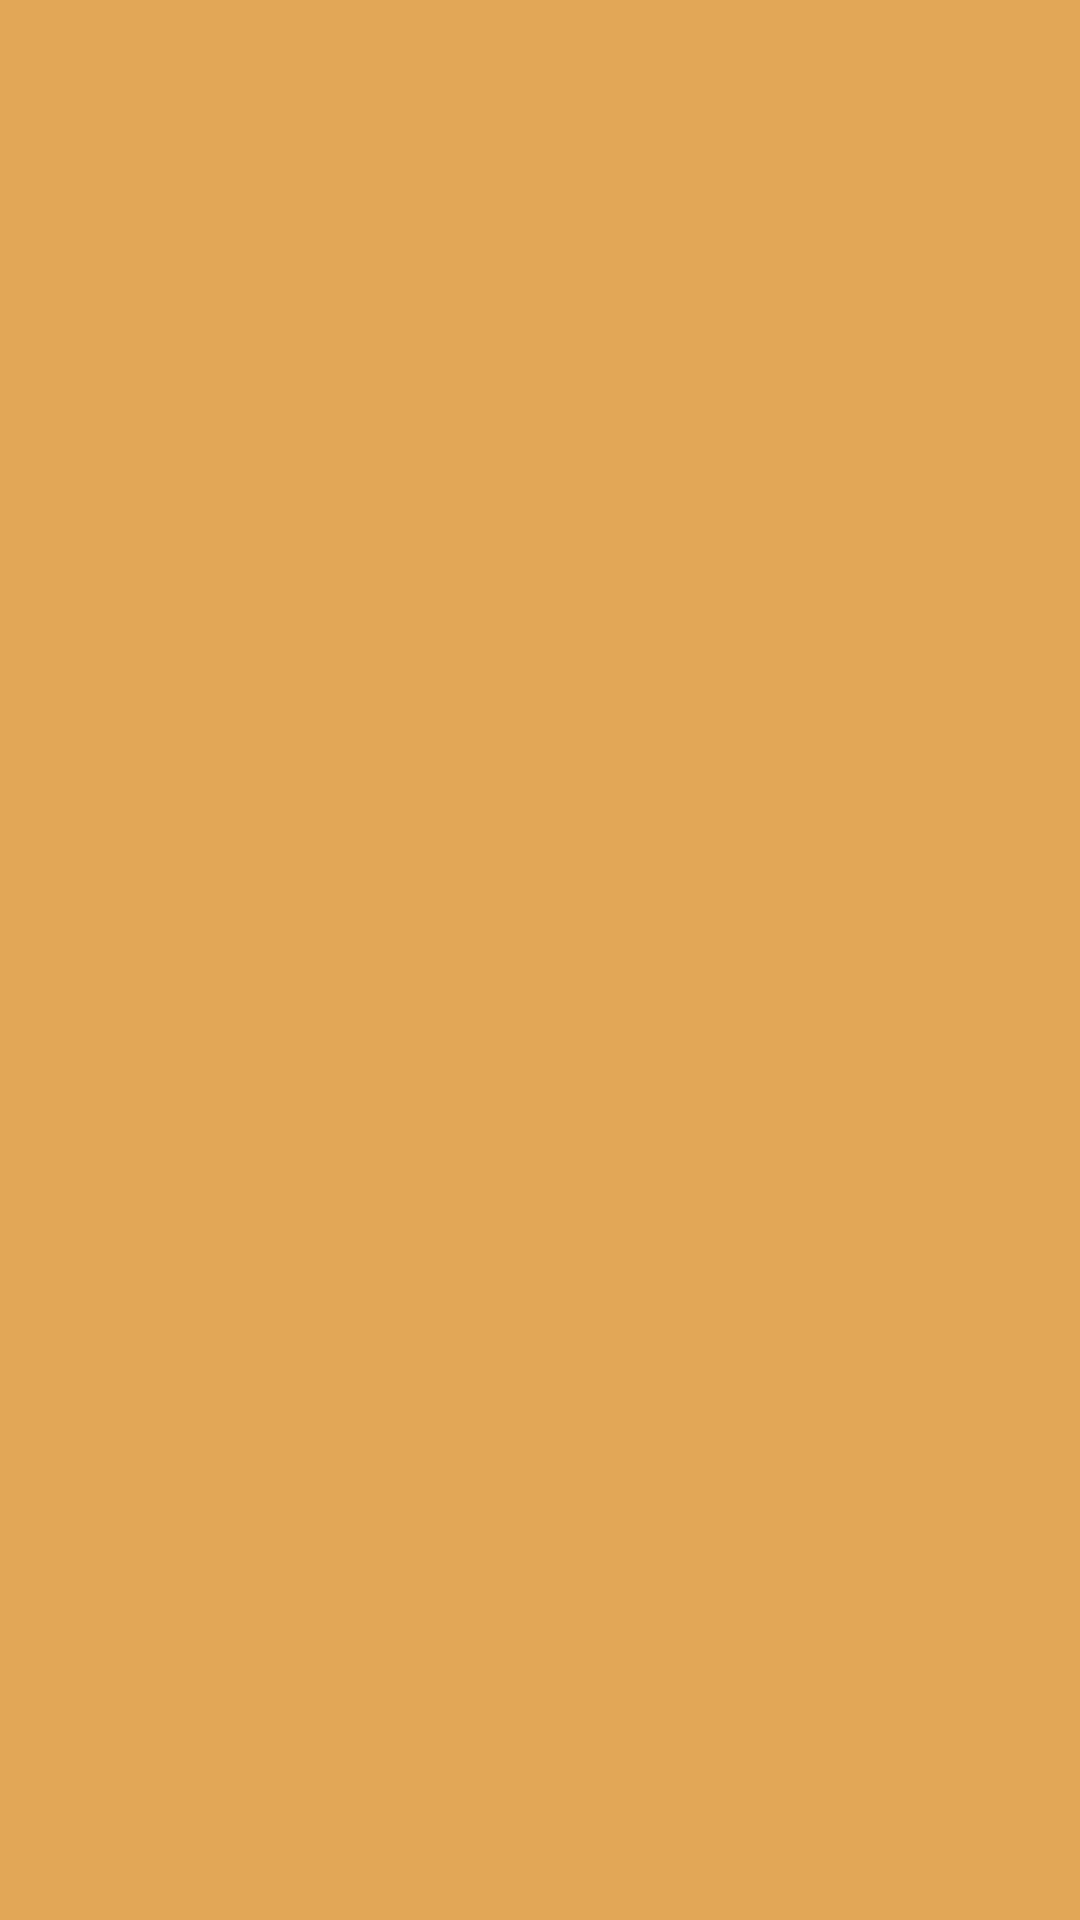 1080x1920 Indian Yellow Solid Color Background